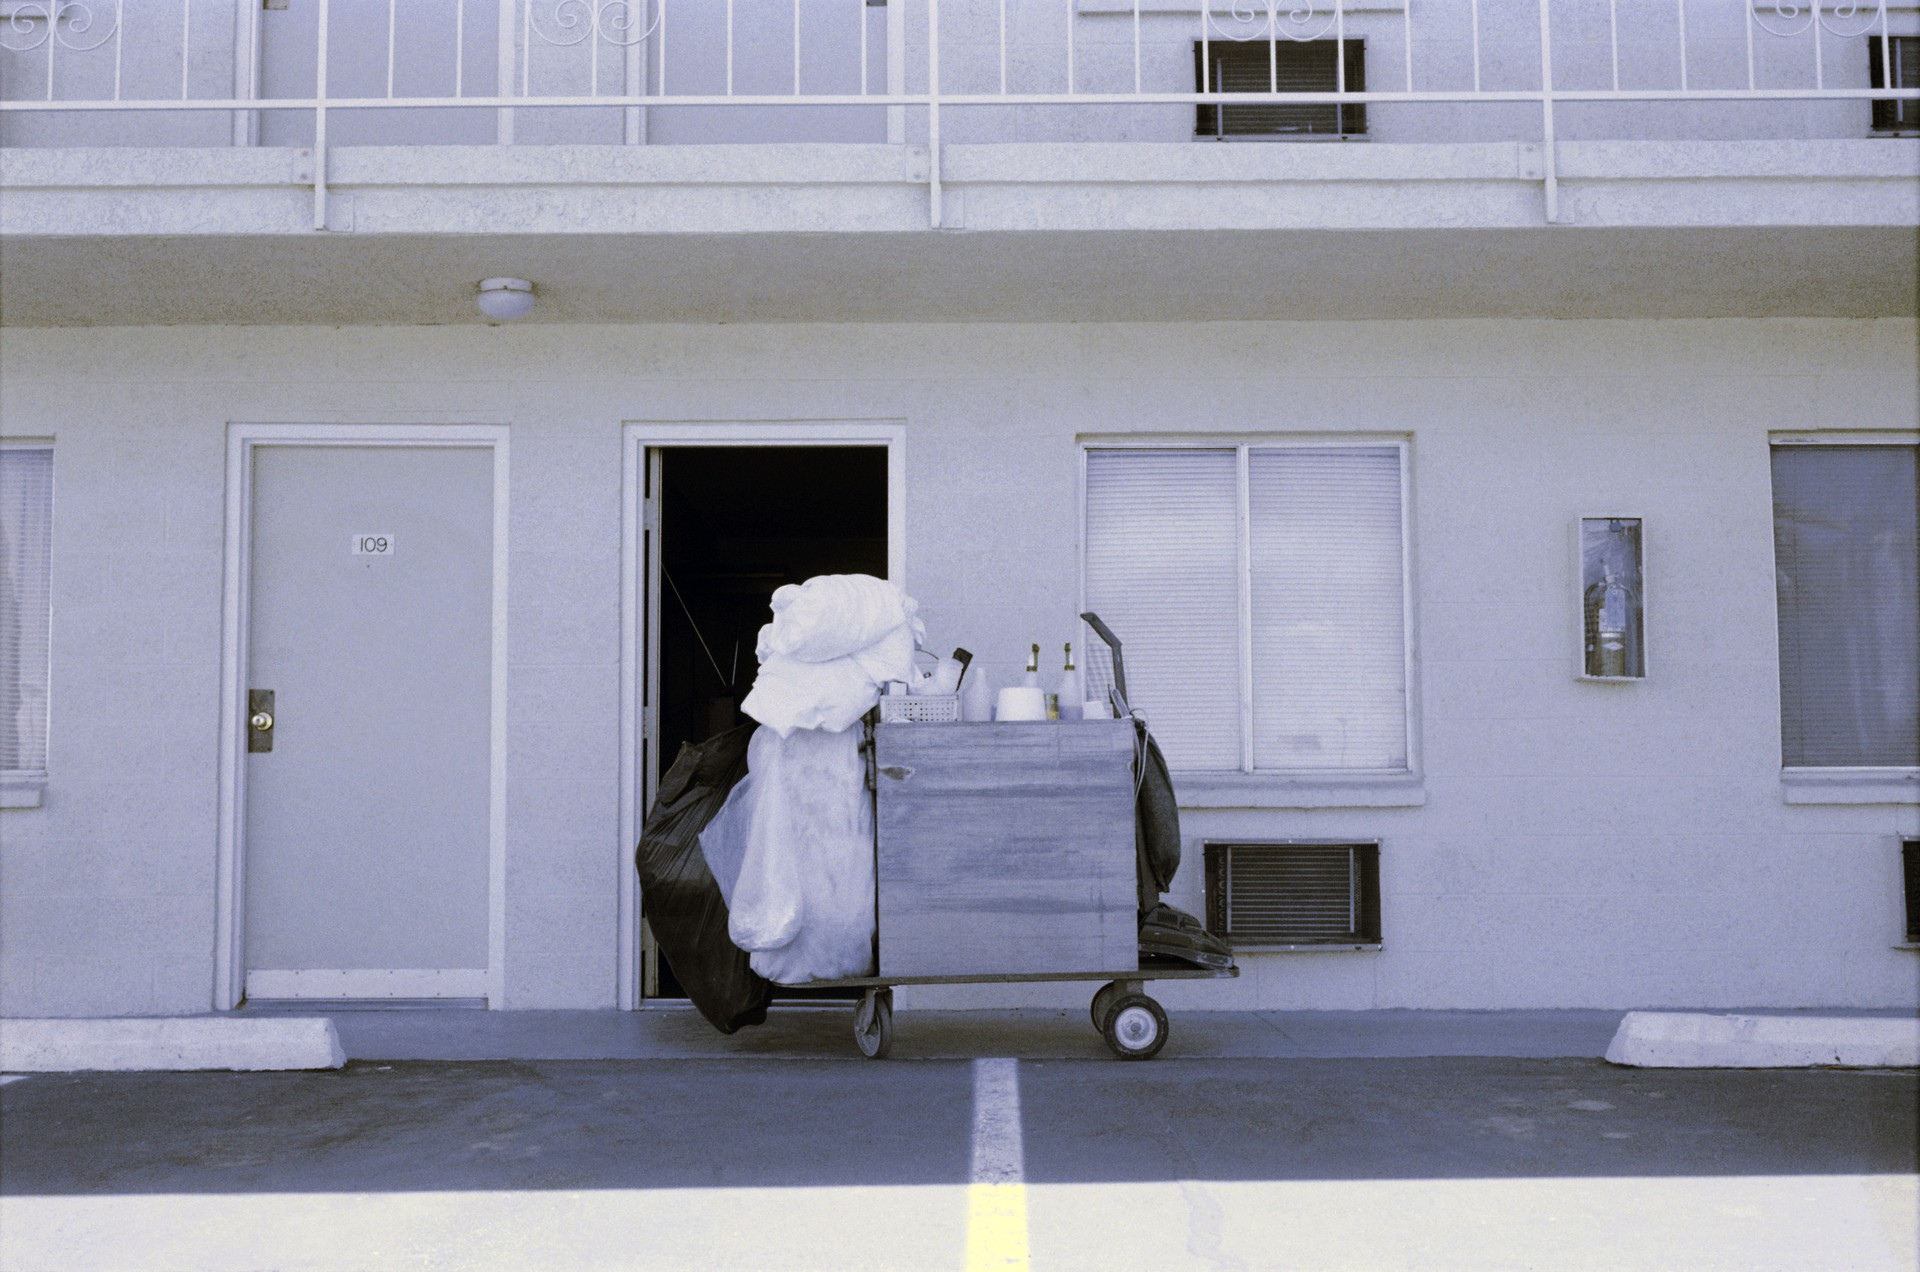 A motel cleaning cart in front of an open door